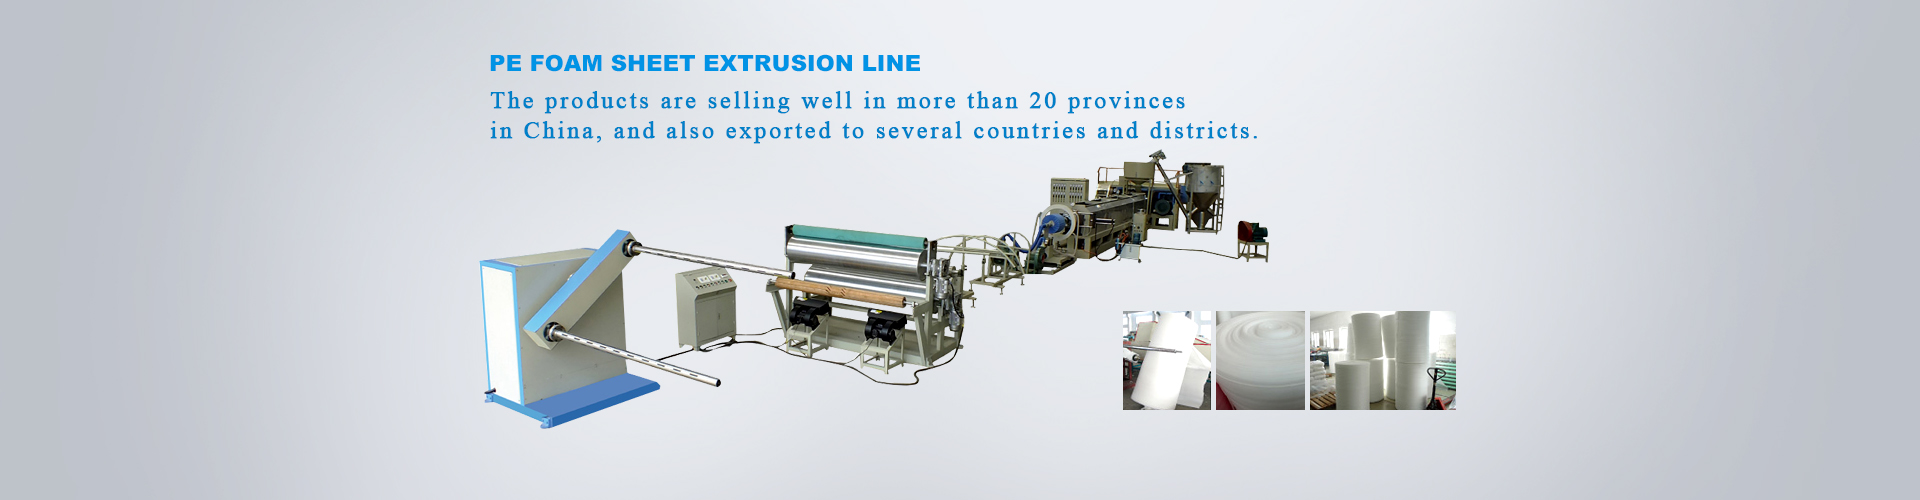 PE Foam Sheet Extrusion Line??????